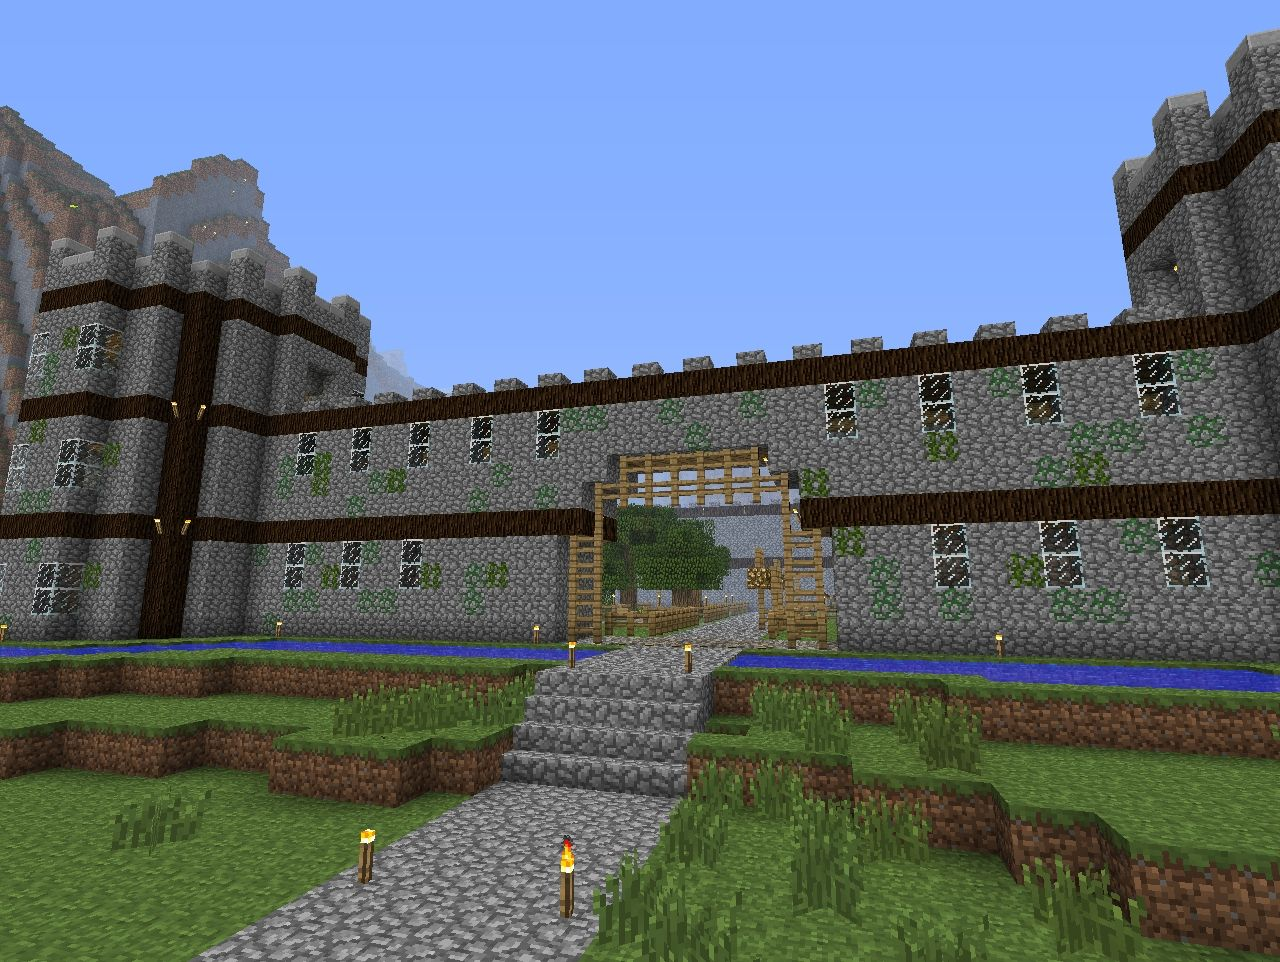 Added Vines And Mossy Cobblestone